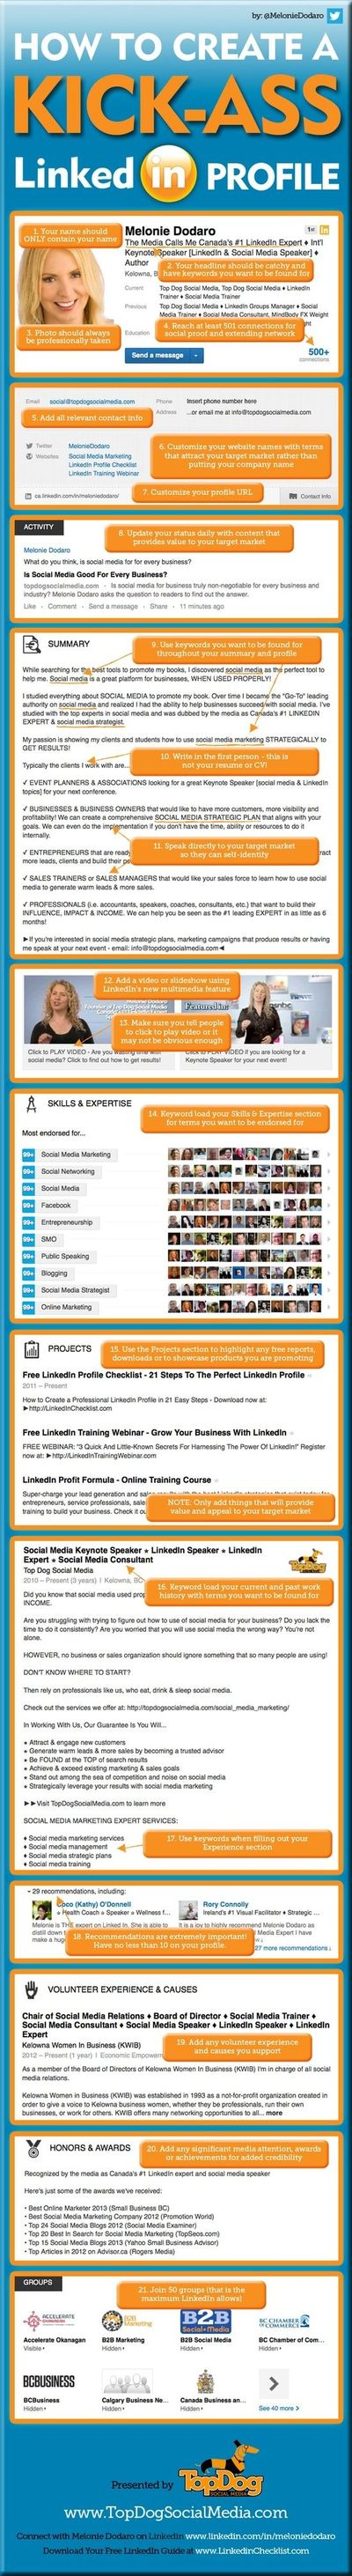 How to Create a Great LinkedIn Profile